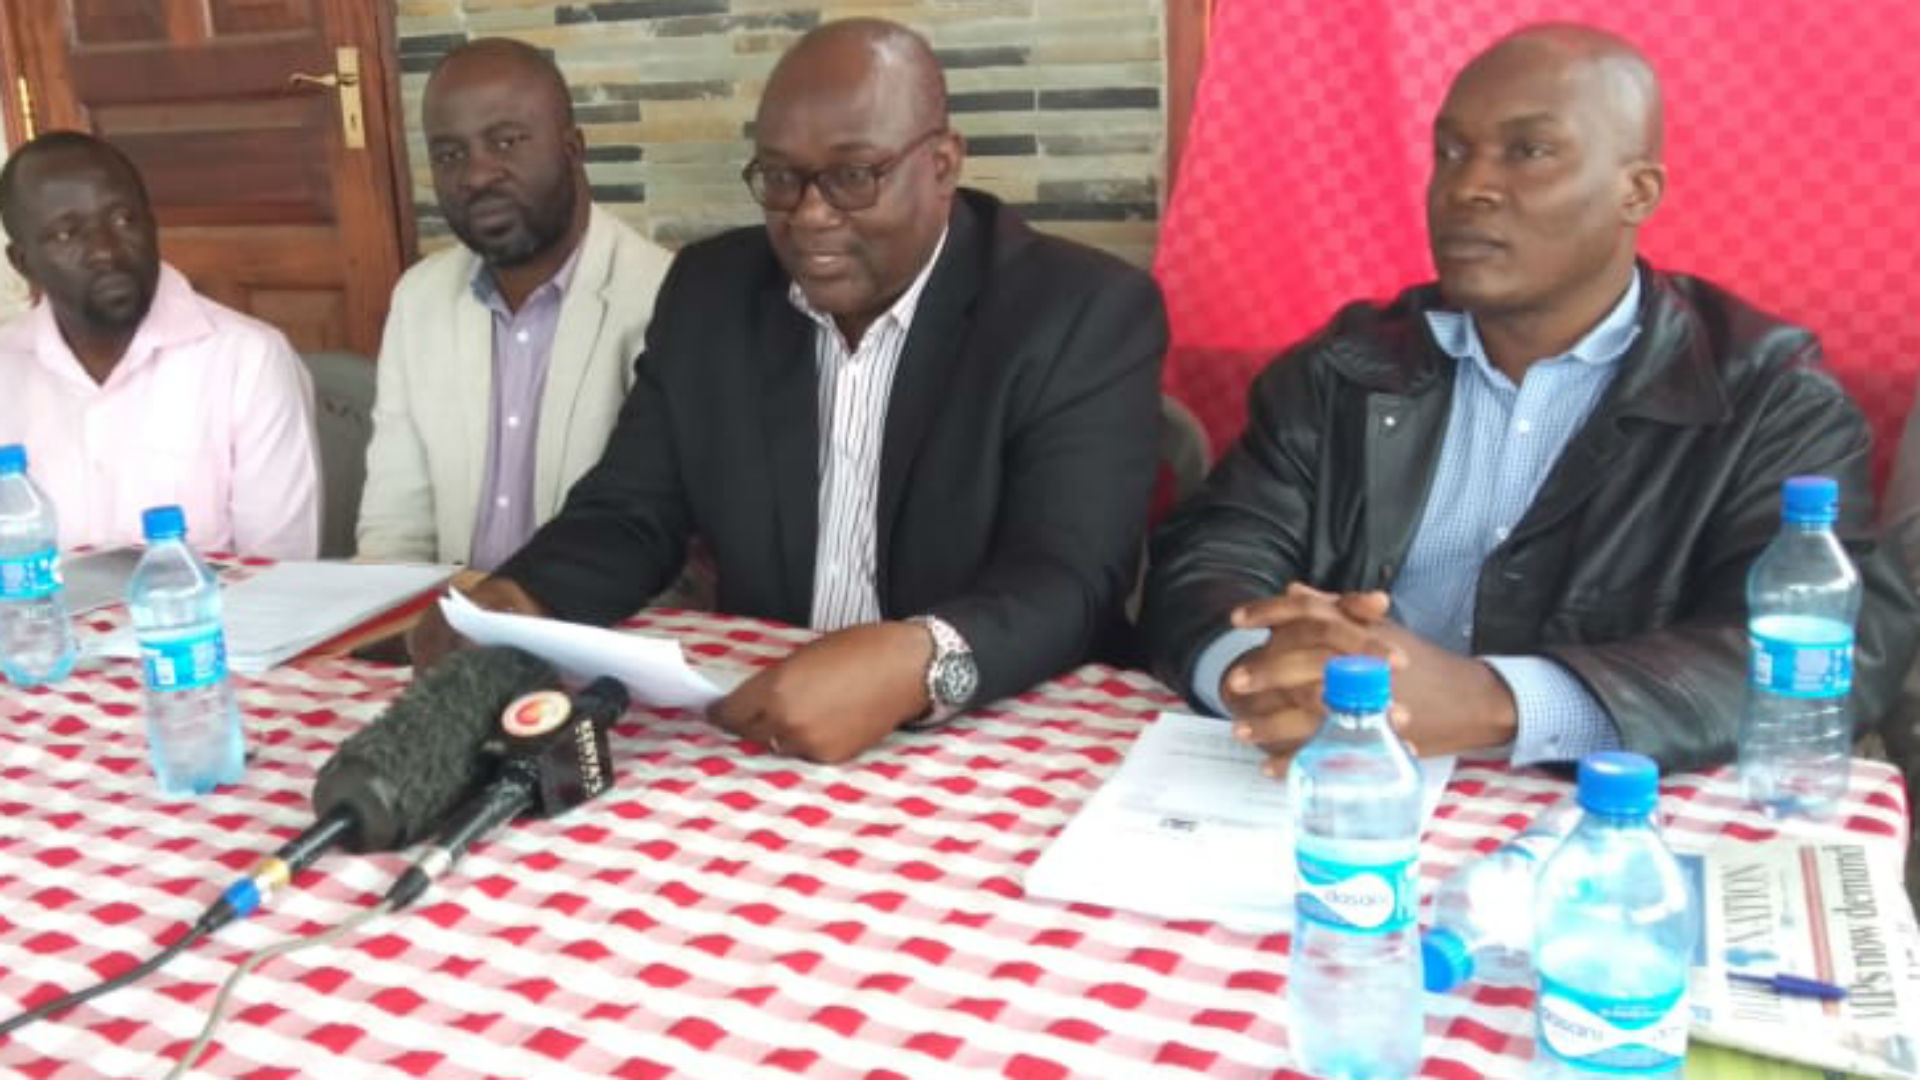 AFC Leopards must hold fresh elections - Sports Registrar